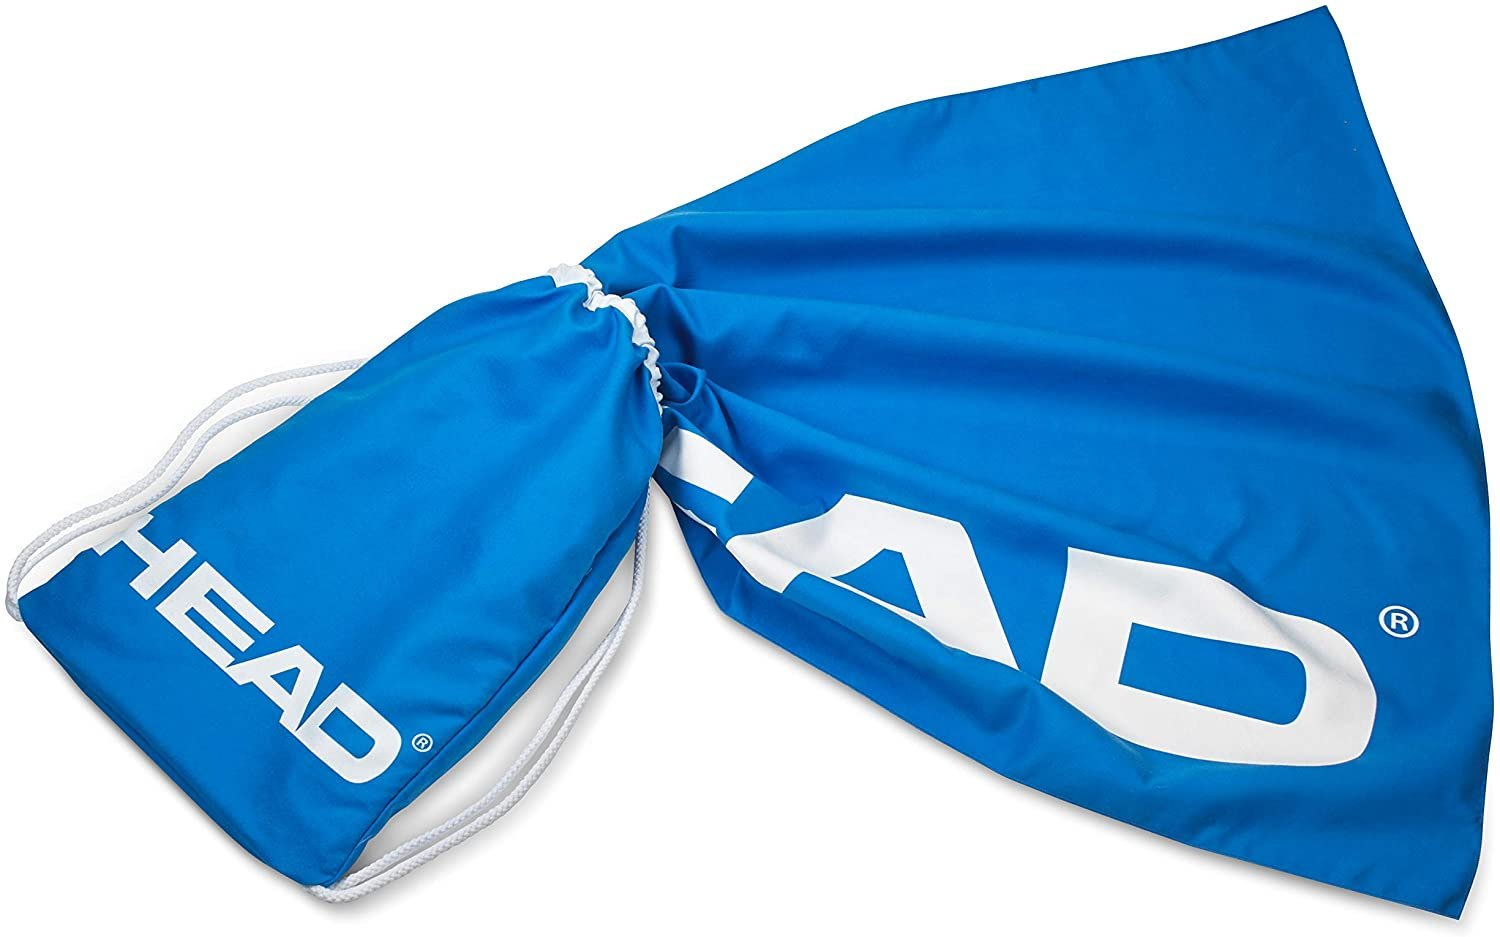 HEAD SPORTS Adventure Microfiber Travel Towel (2-in-1 Towel & Backpack)